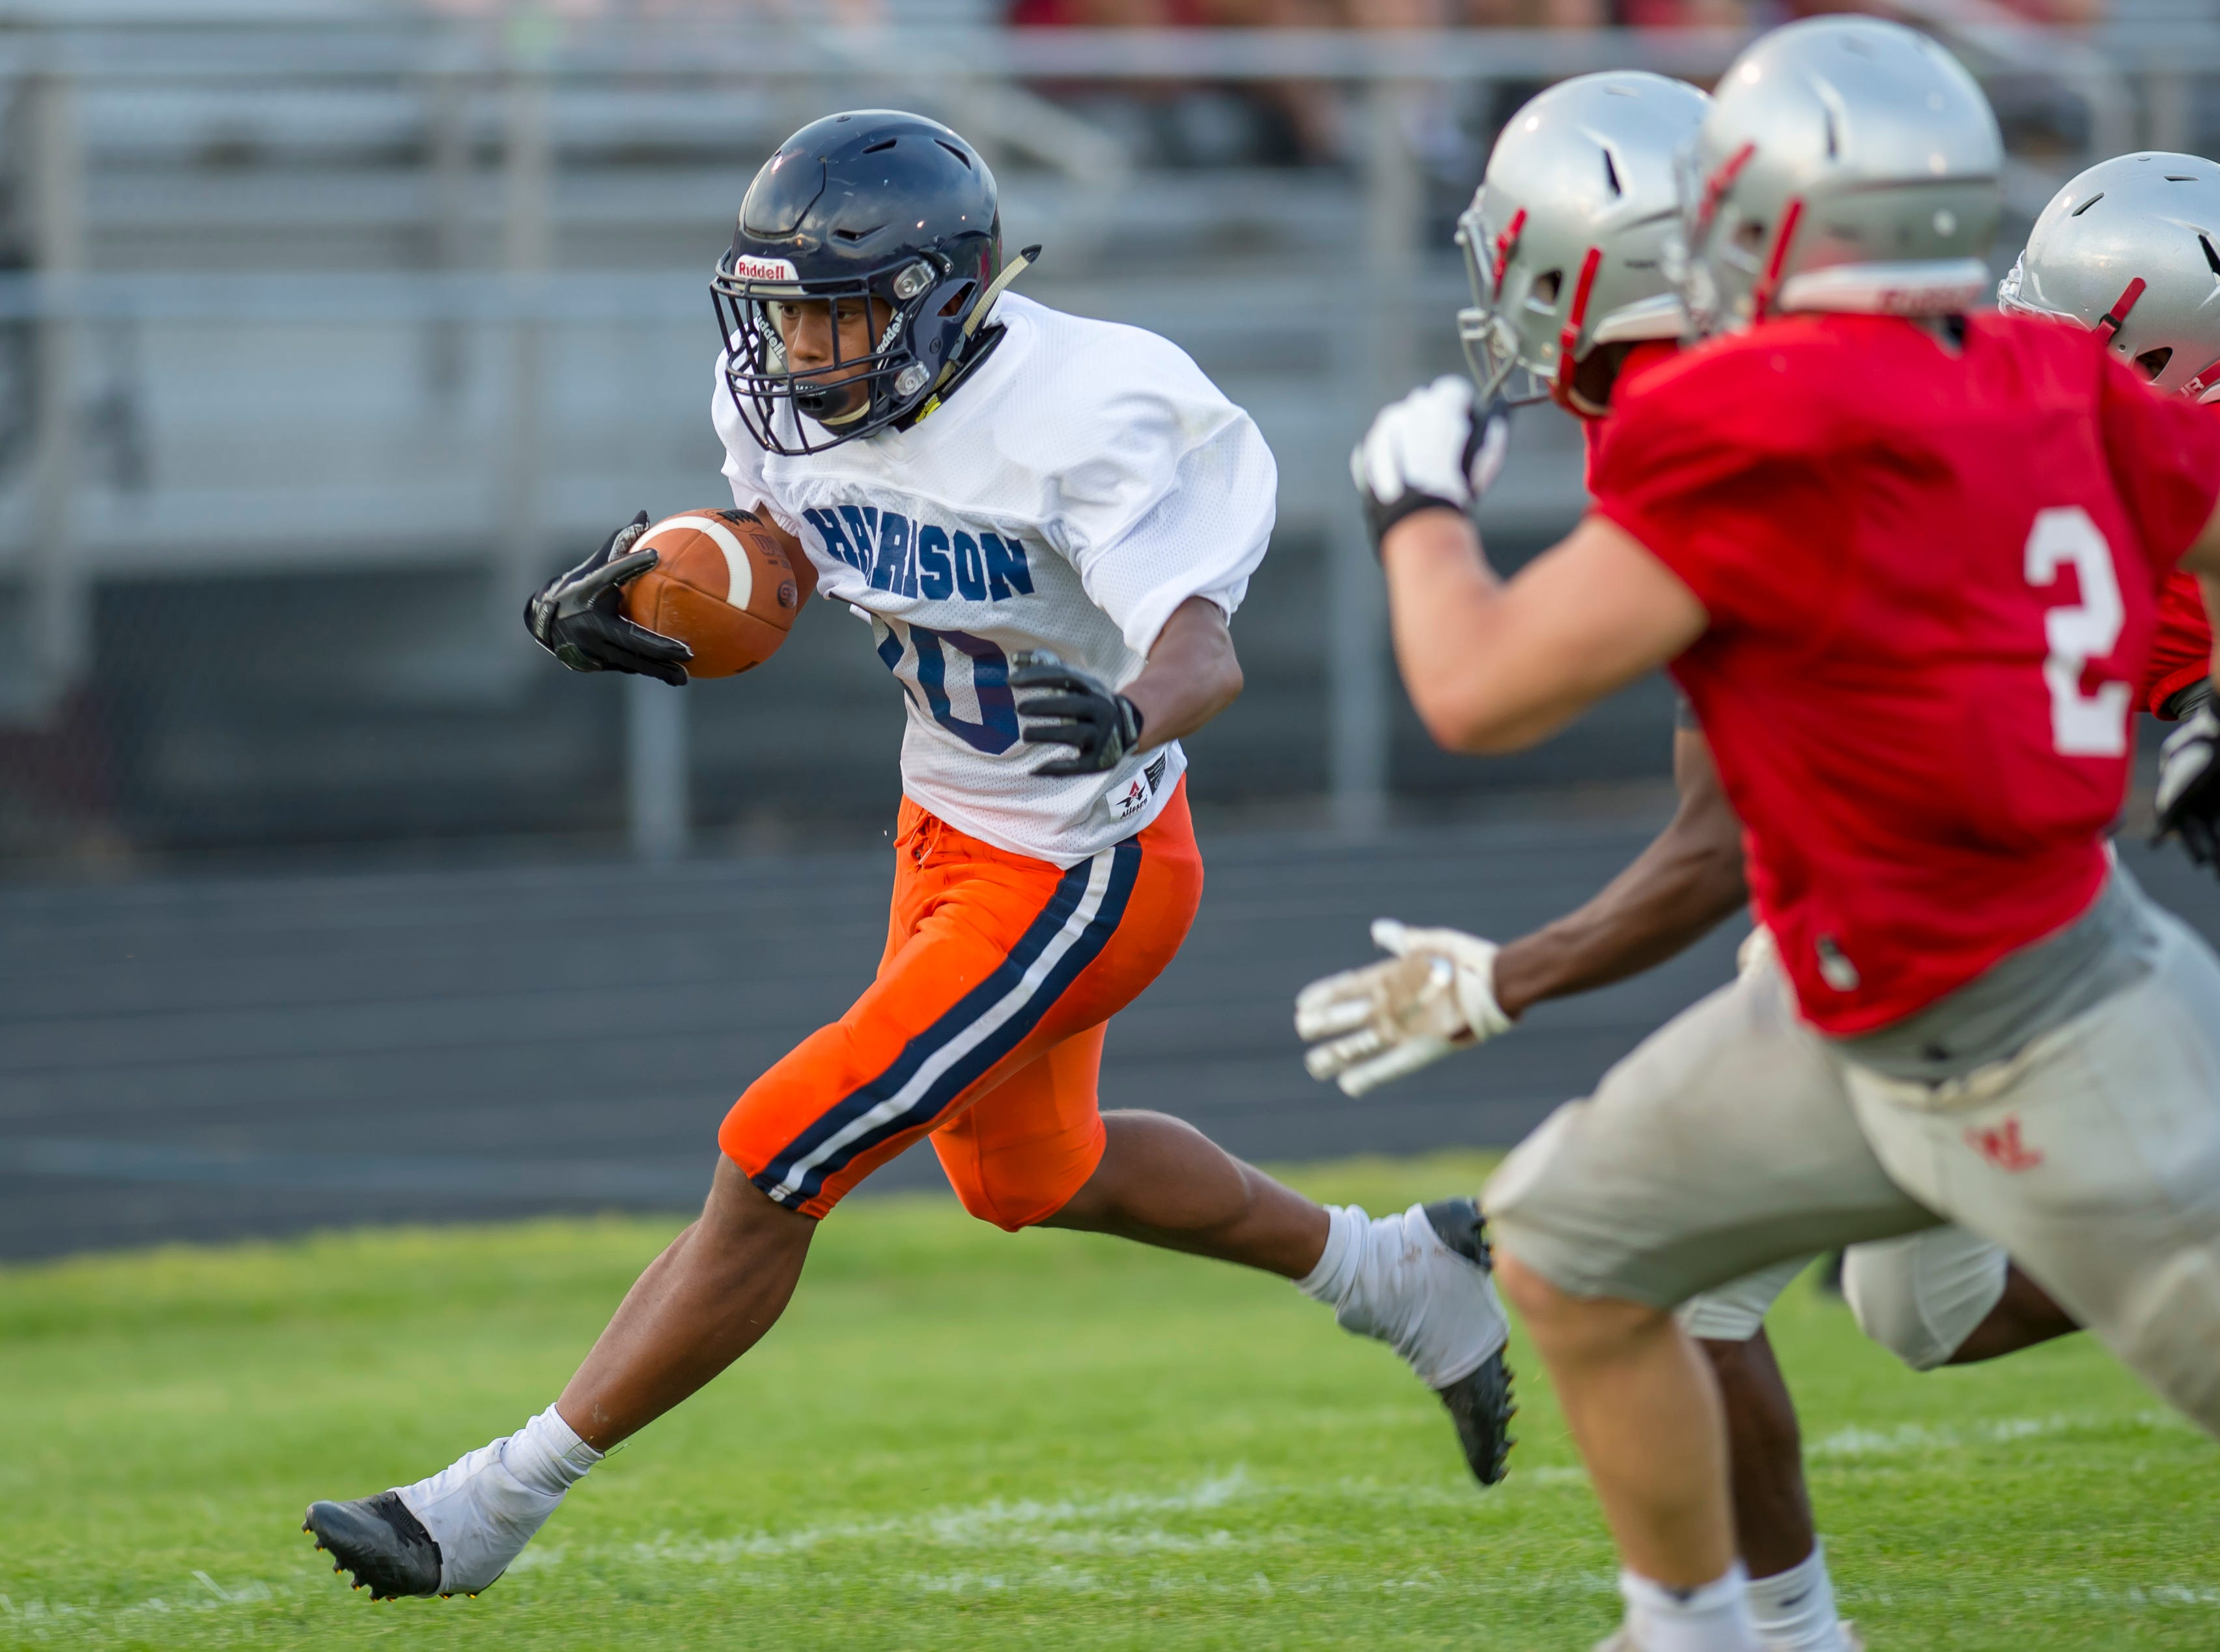 Isaiah Armstrong speeds down the sideline during the football scrimmage between the Harrison Raiders and the West Lafayette Red Devils from Gordon Straley Field